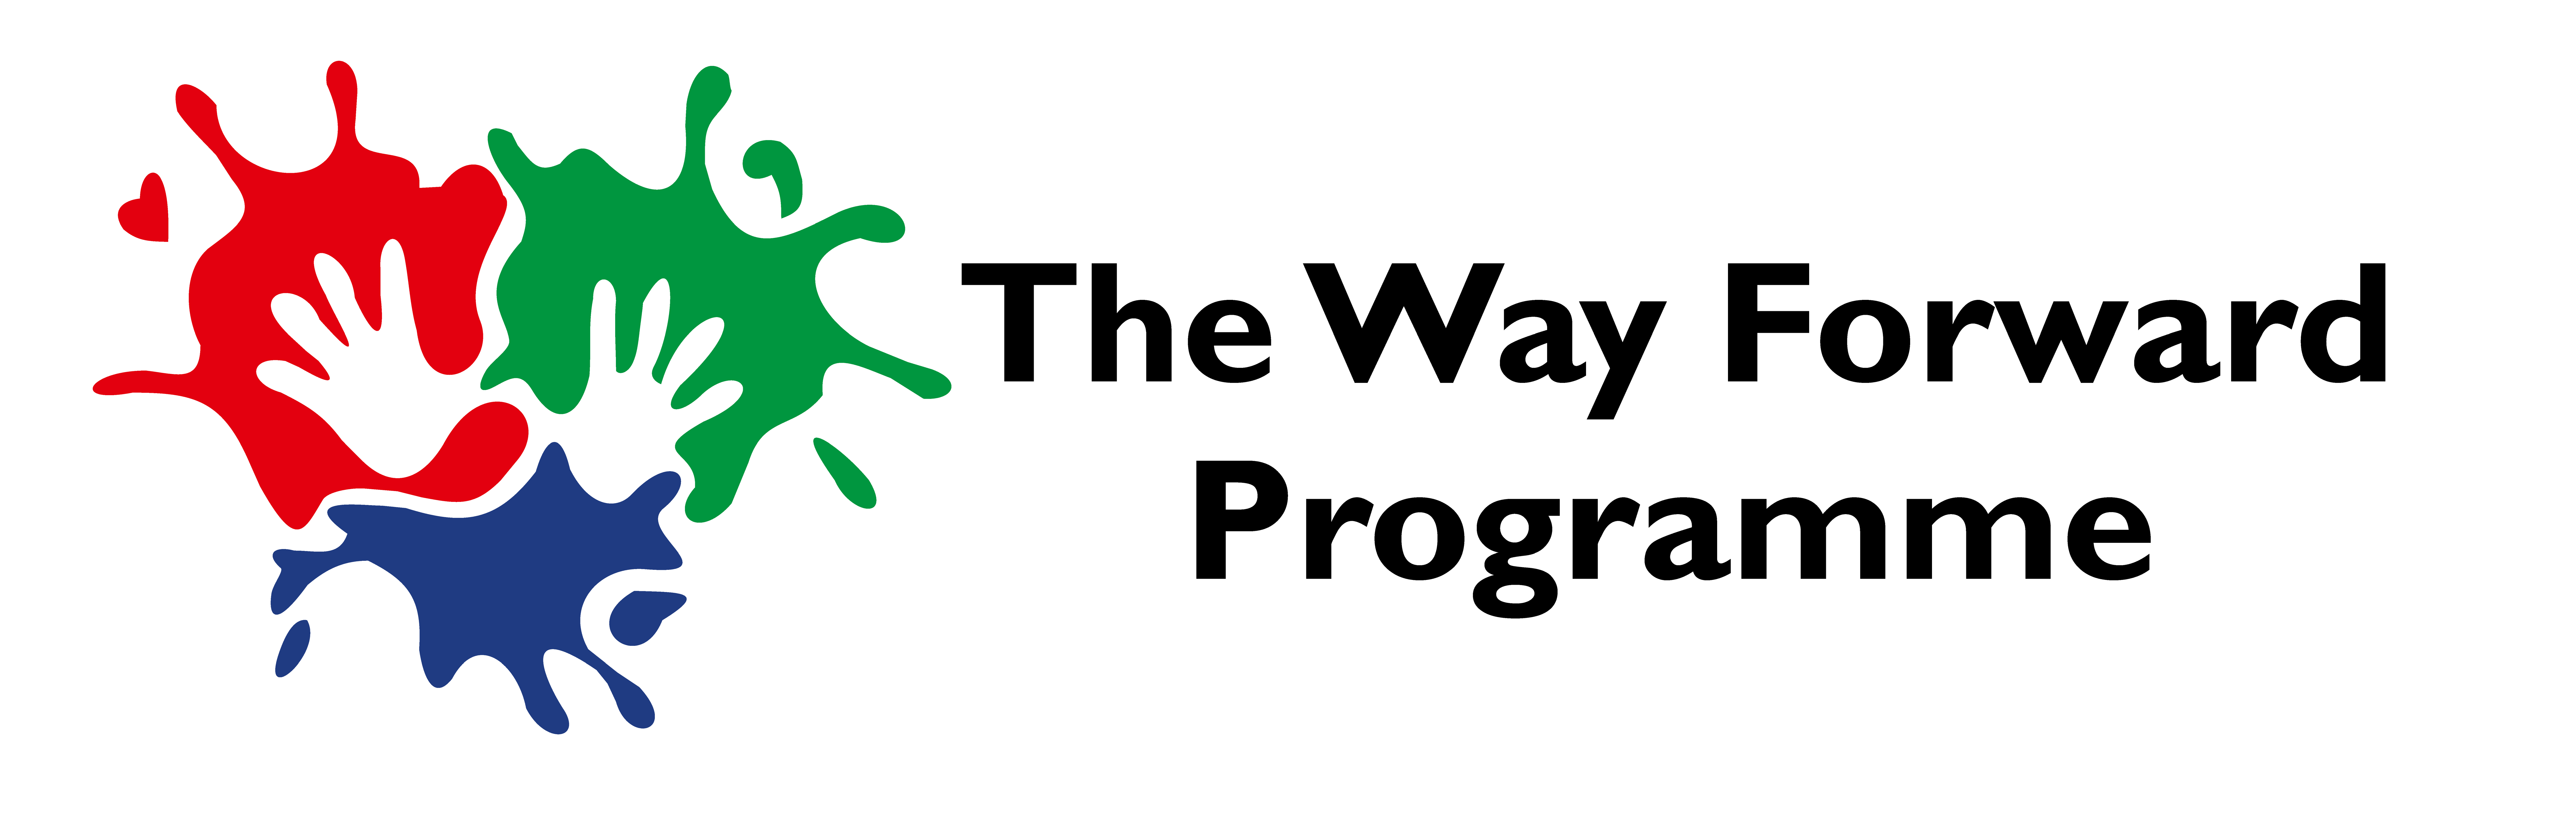 Way Forward Programme Logo